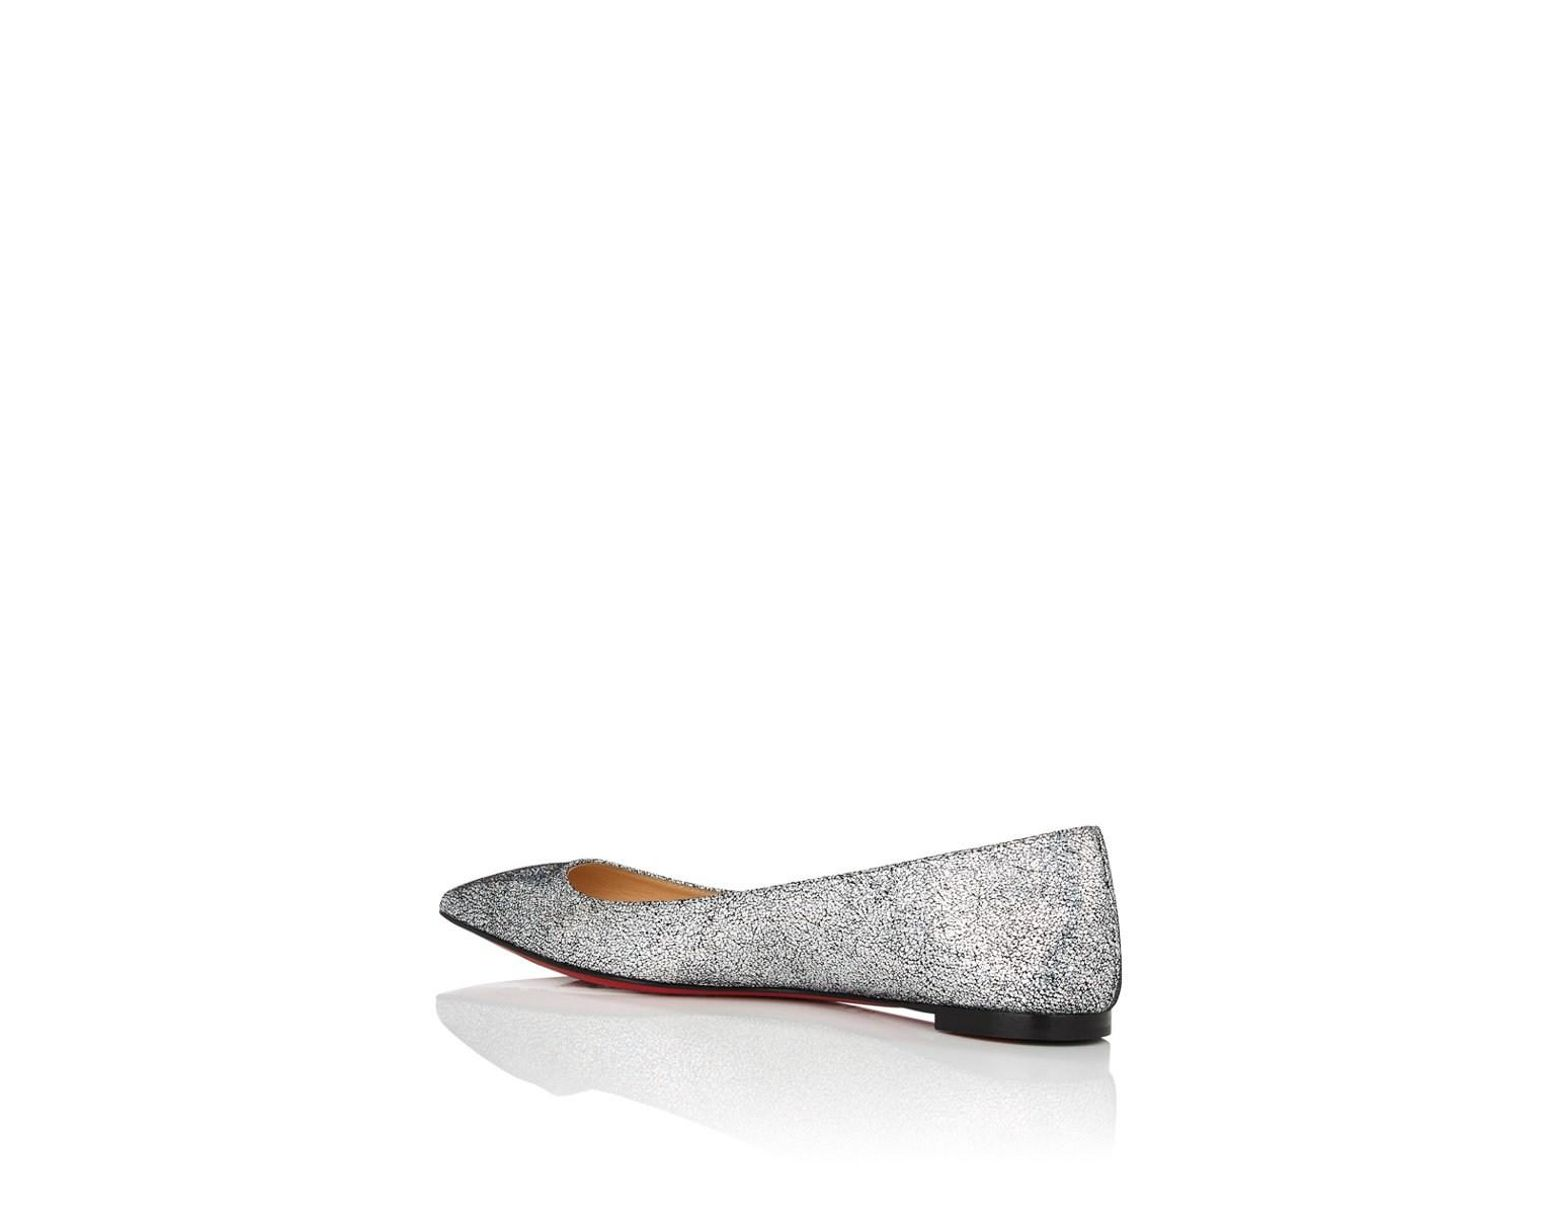 5c6d37fbbdf7 Lyst - Christian Louboutin Ballalla Glitter Leather Flats in Metallic